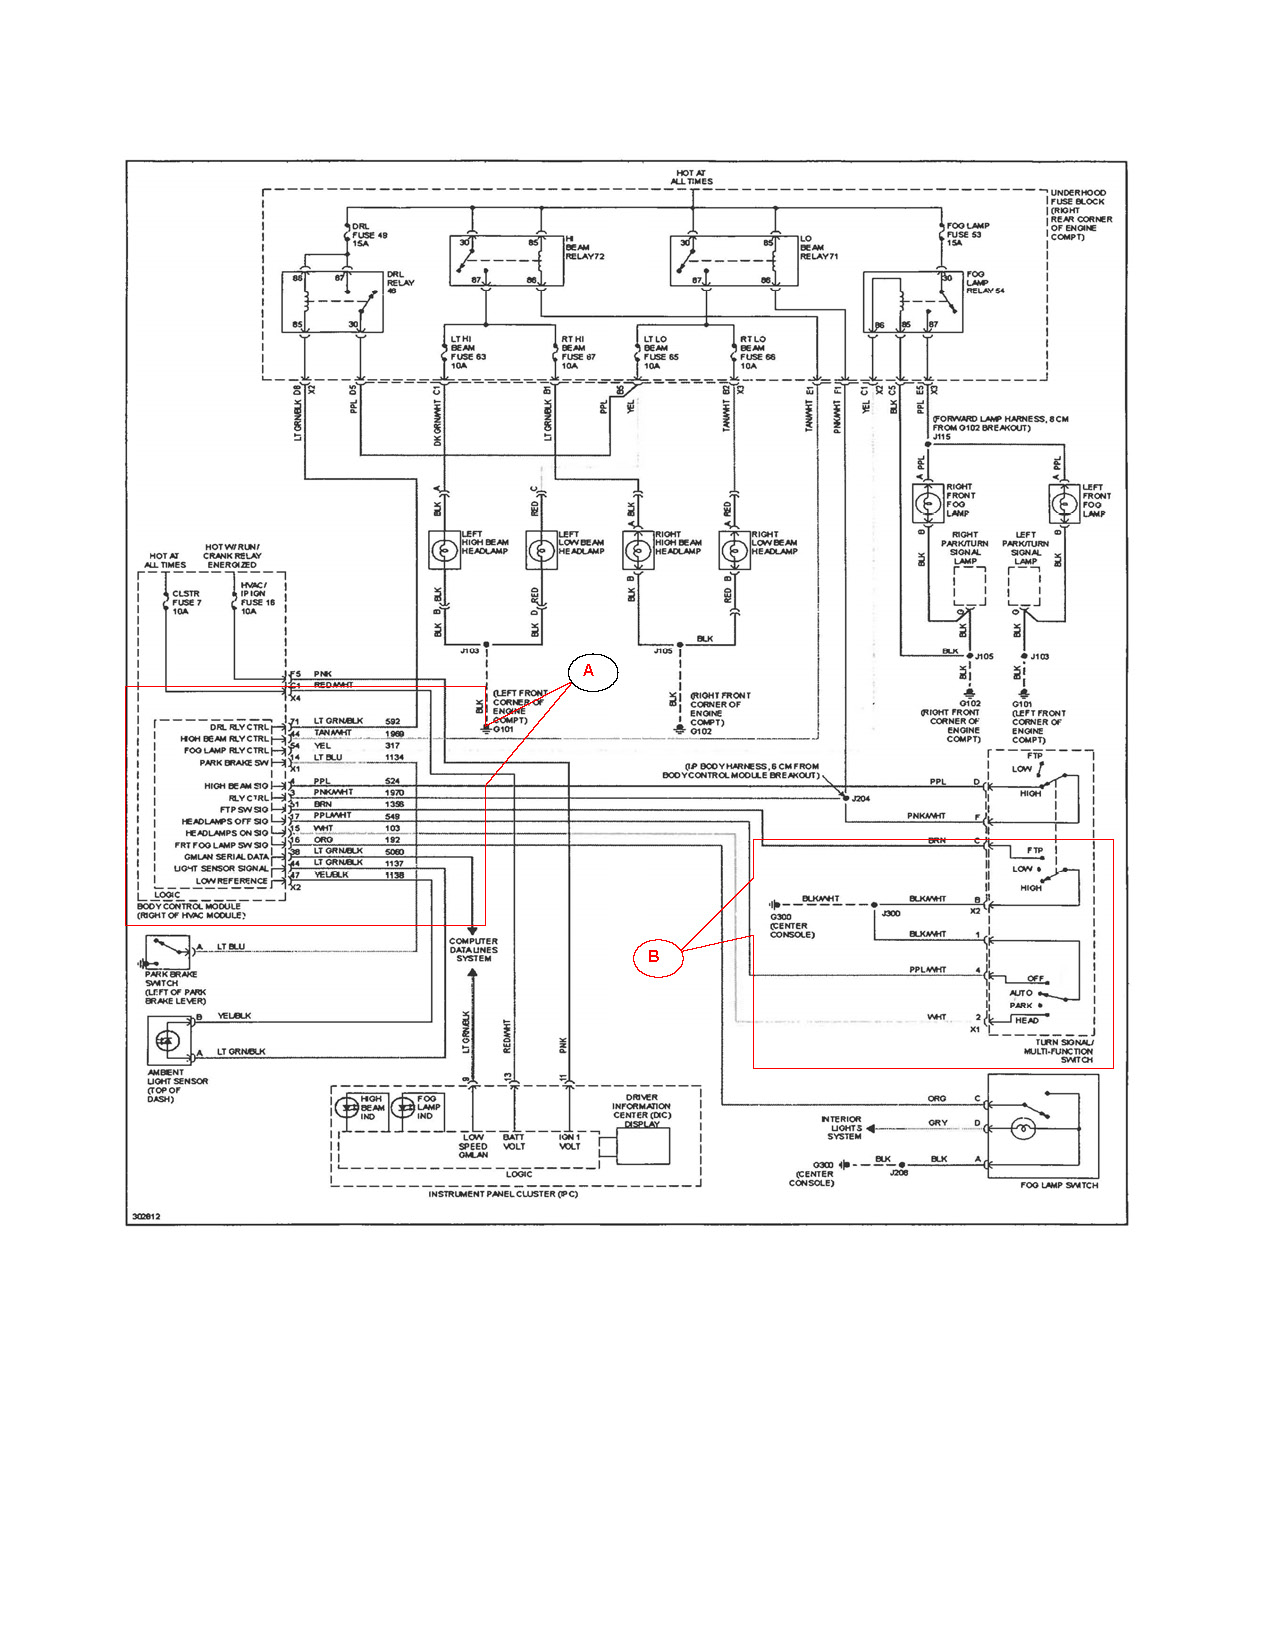 2009 saturn sky fuse diagram schematic diagrams rh ogmconsulting co 2001 Saturn  Fuse Diagram Saturn SL2